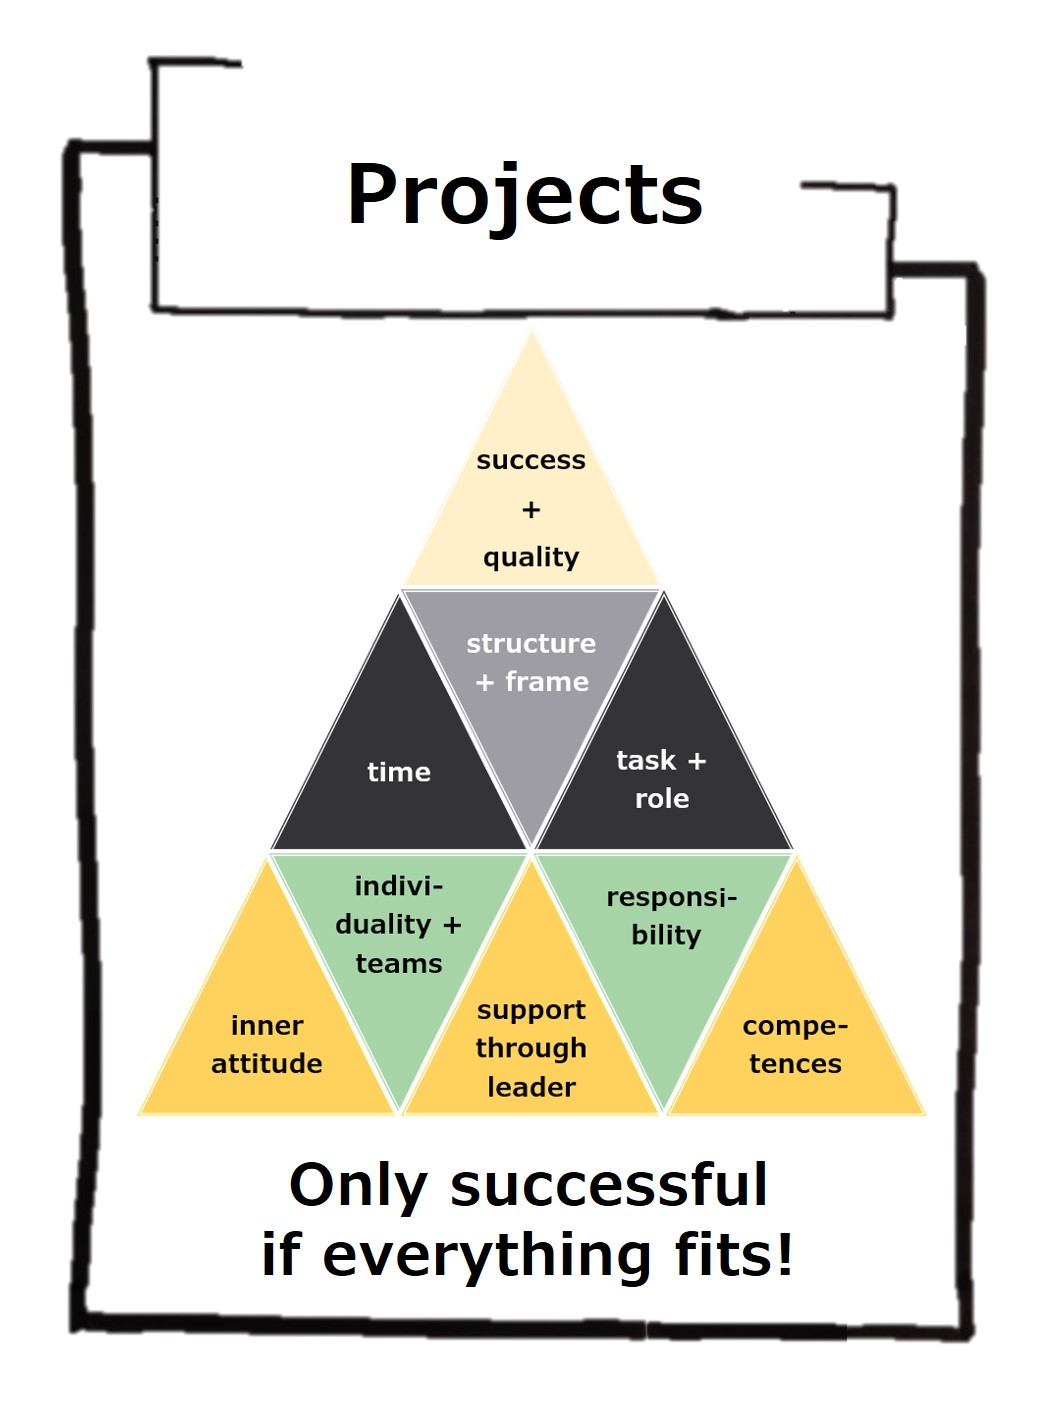 Projects are only successful if we take the best and worst case into account and don't let our clients bend us!